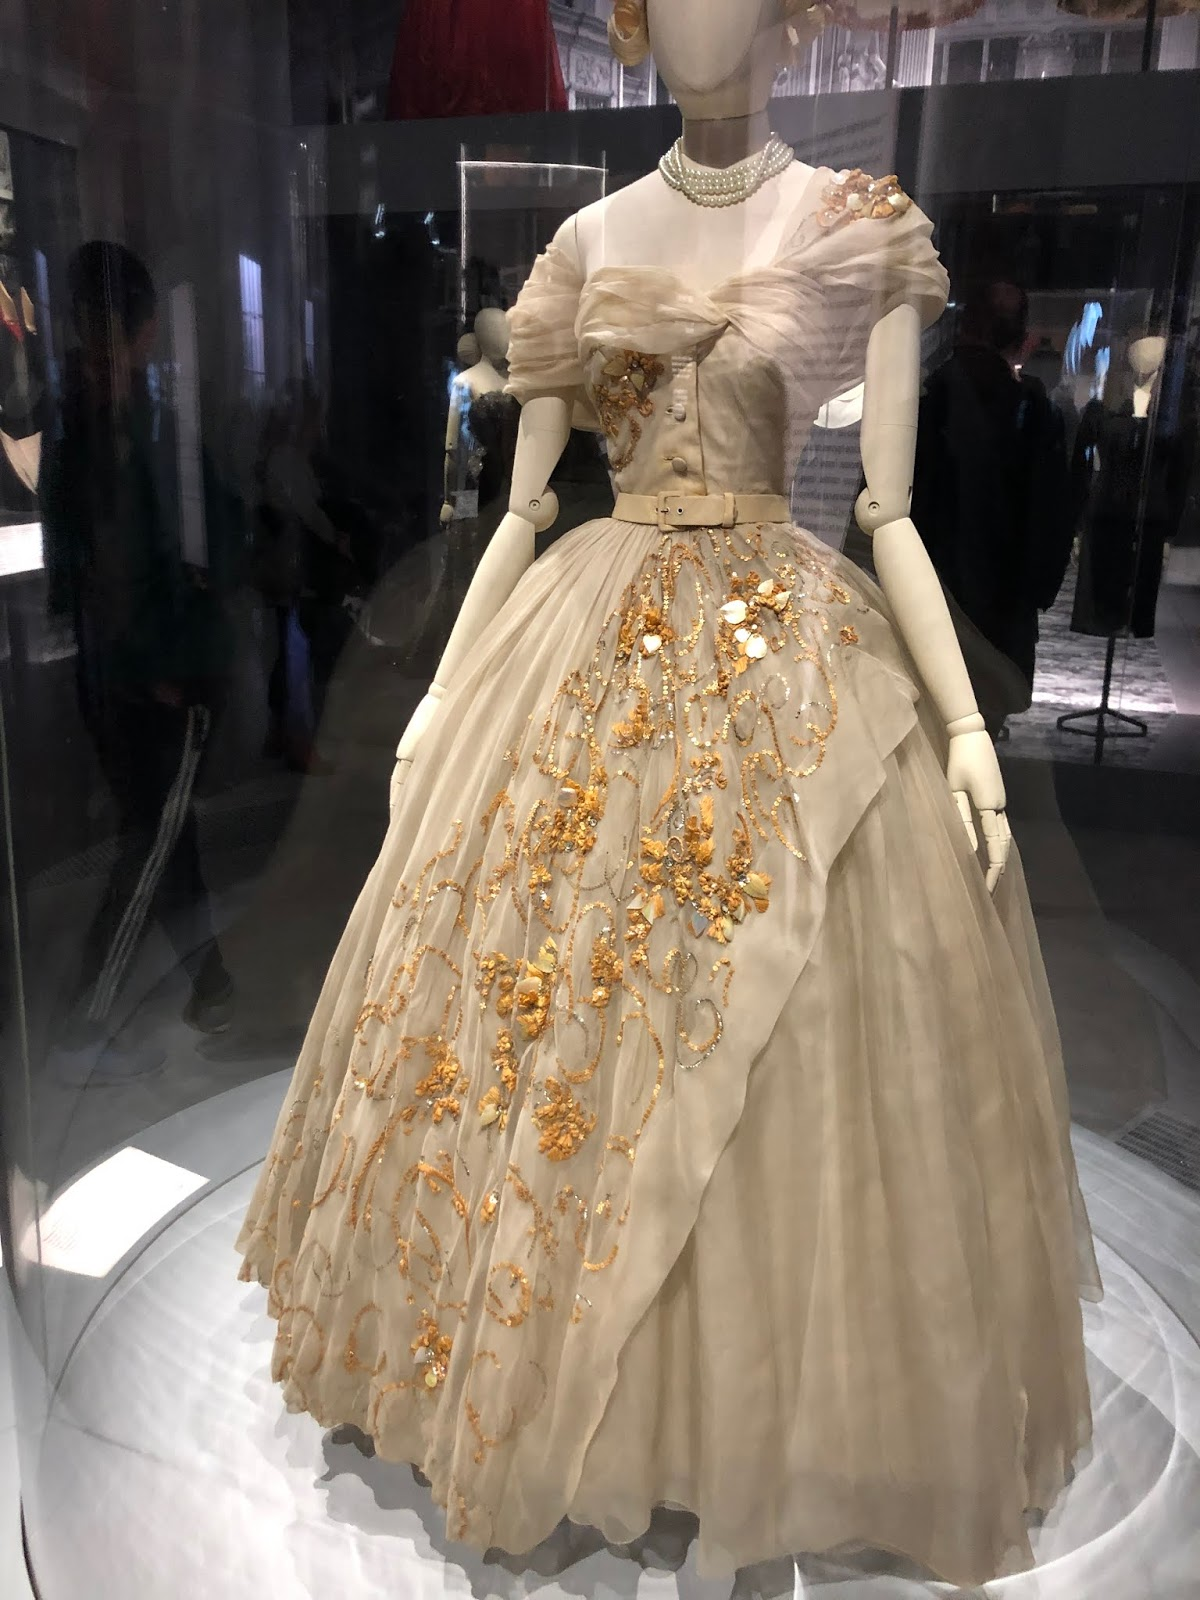 christian dior exhibition v and a princess margaret dress